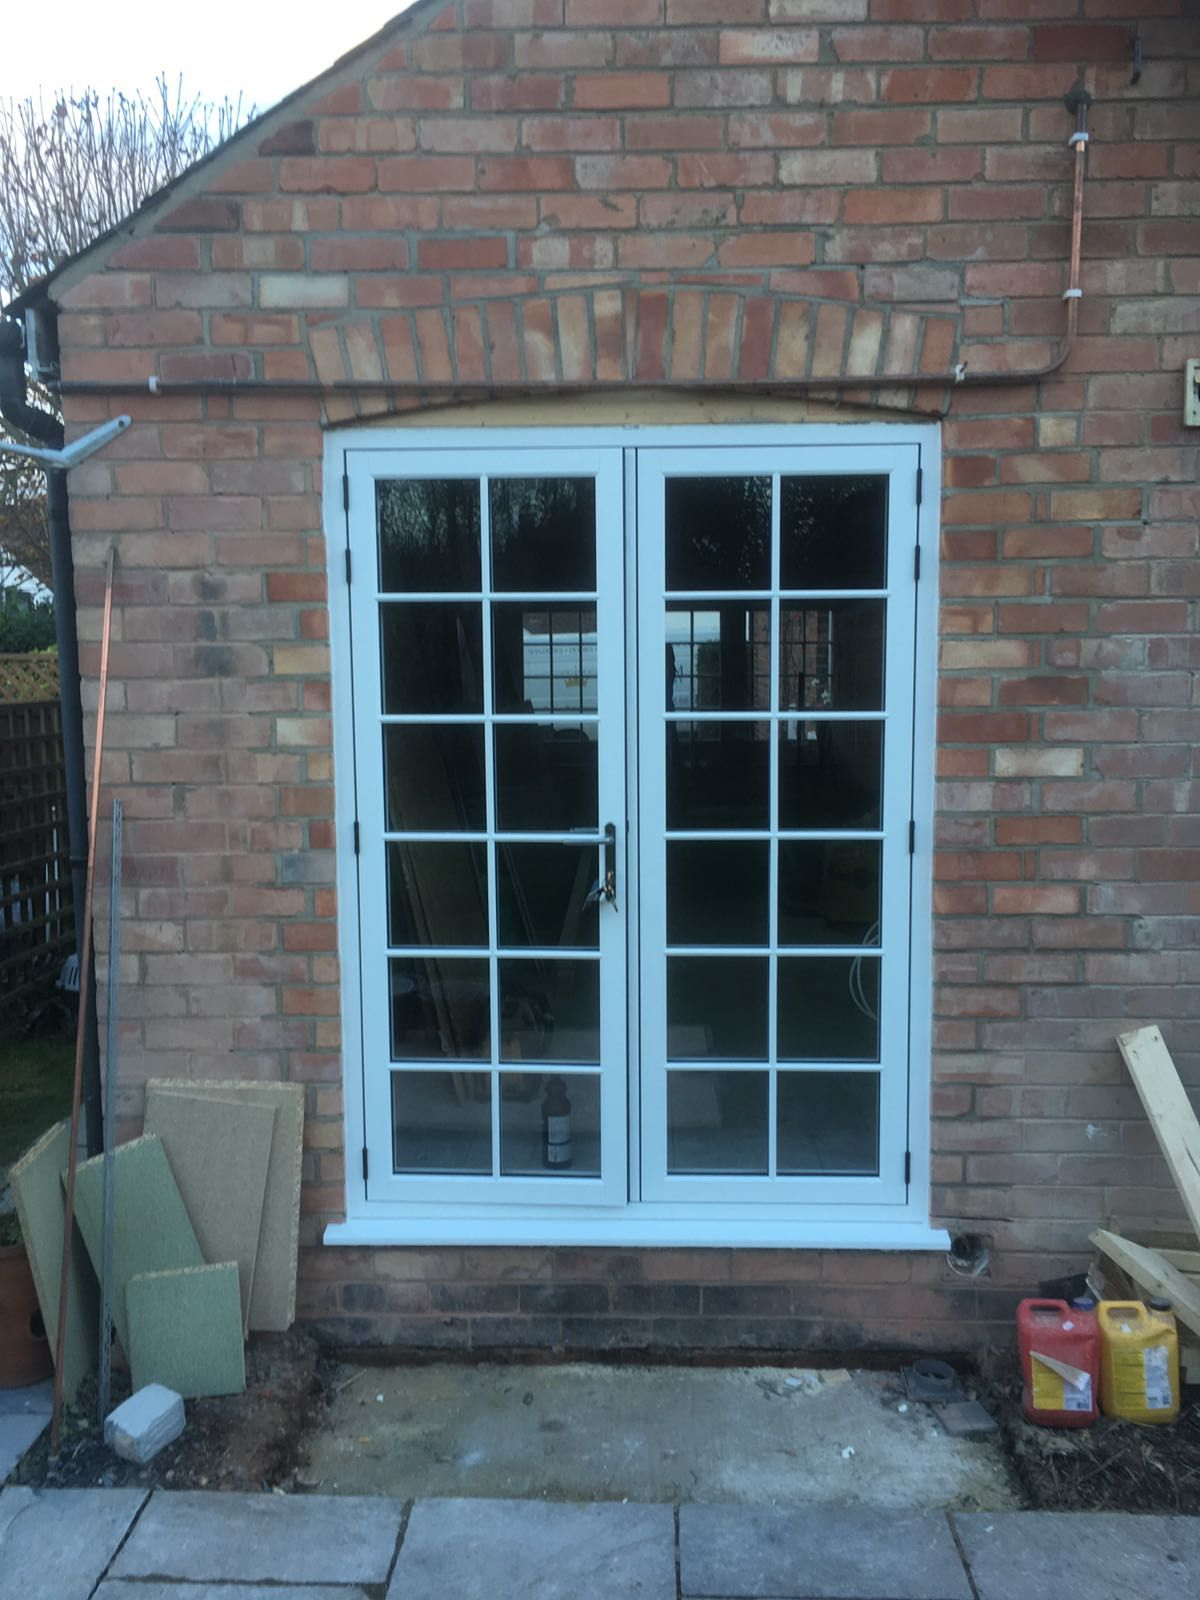 R9journey Flush Casement Windows And French Door In Clotted Creme A Rated Glazing As Standard With Satin Hardware In Windows Windows And Doors French Doors